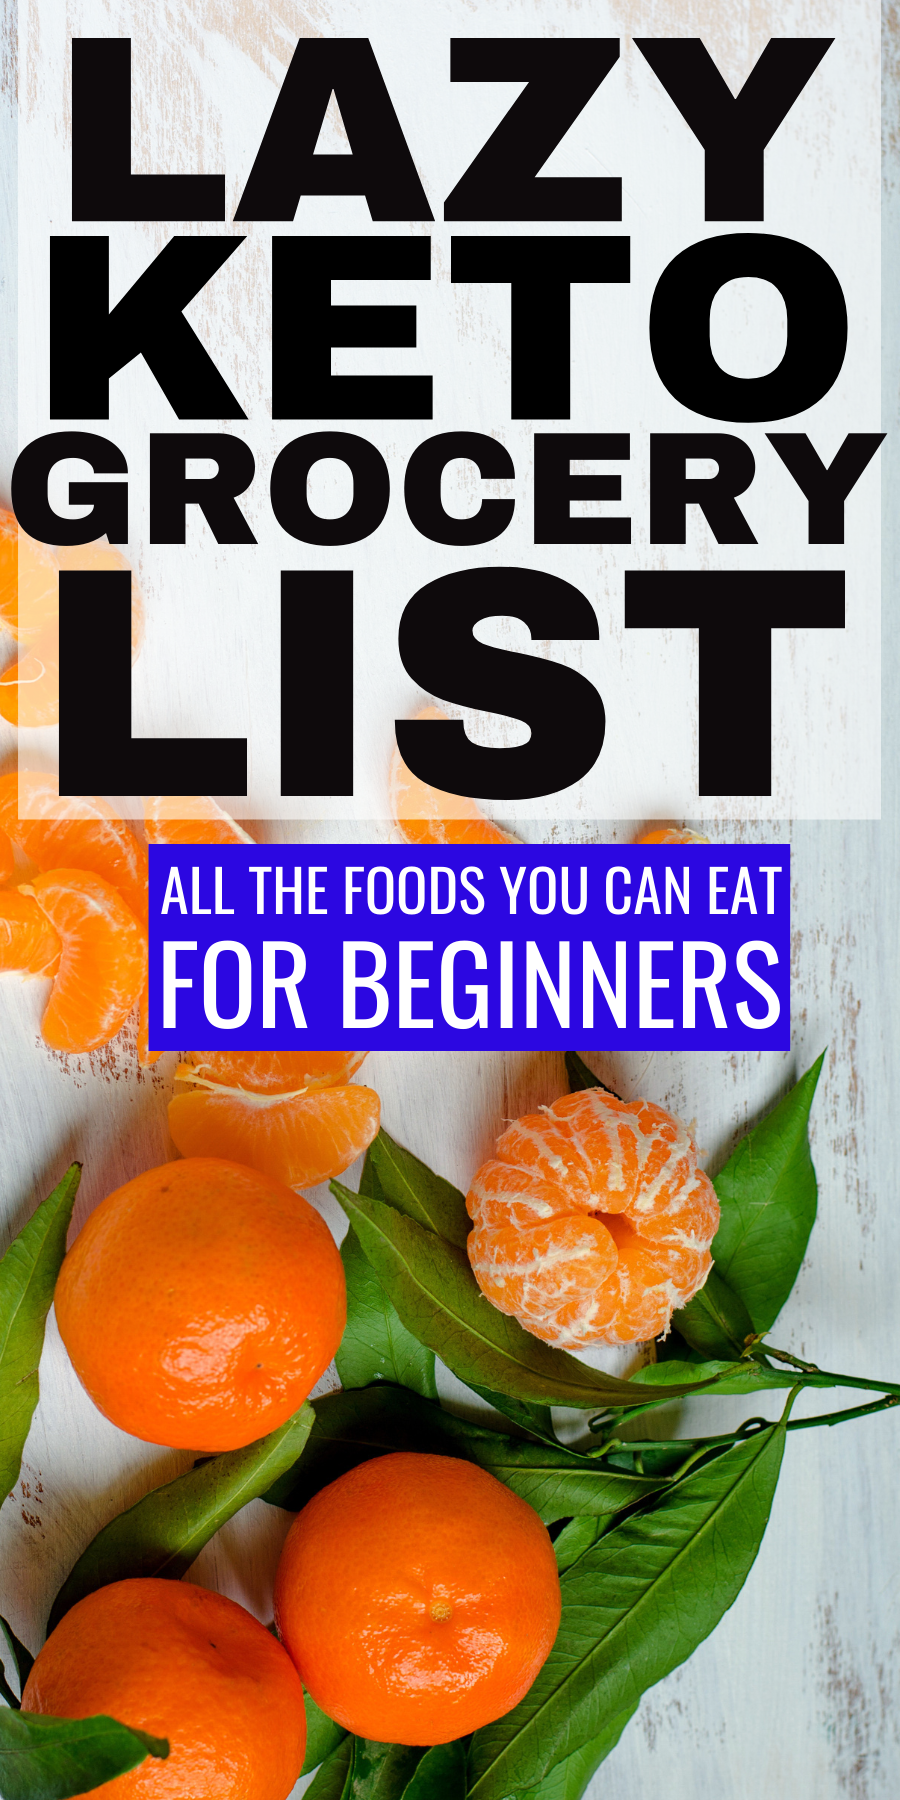 Lazy Keto Grocery List- Keto For Beginners - Oh So Foodie